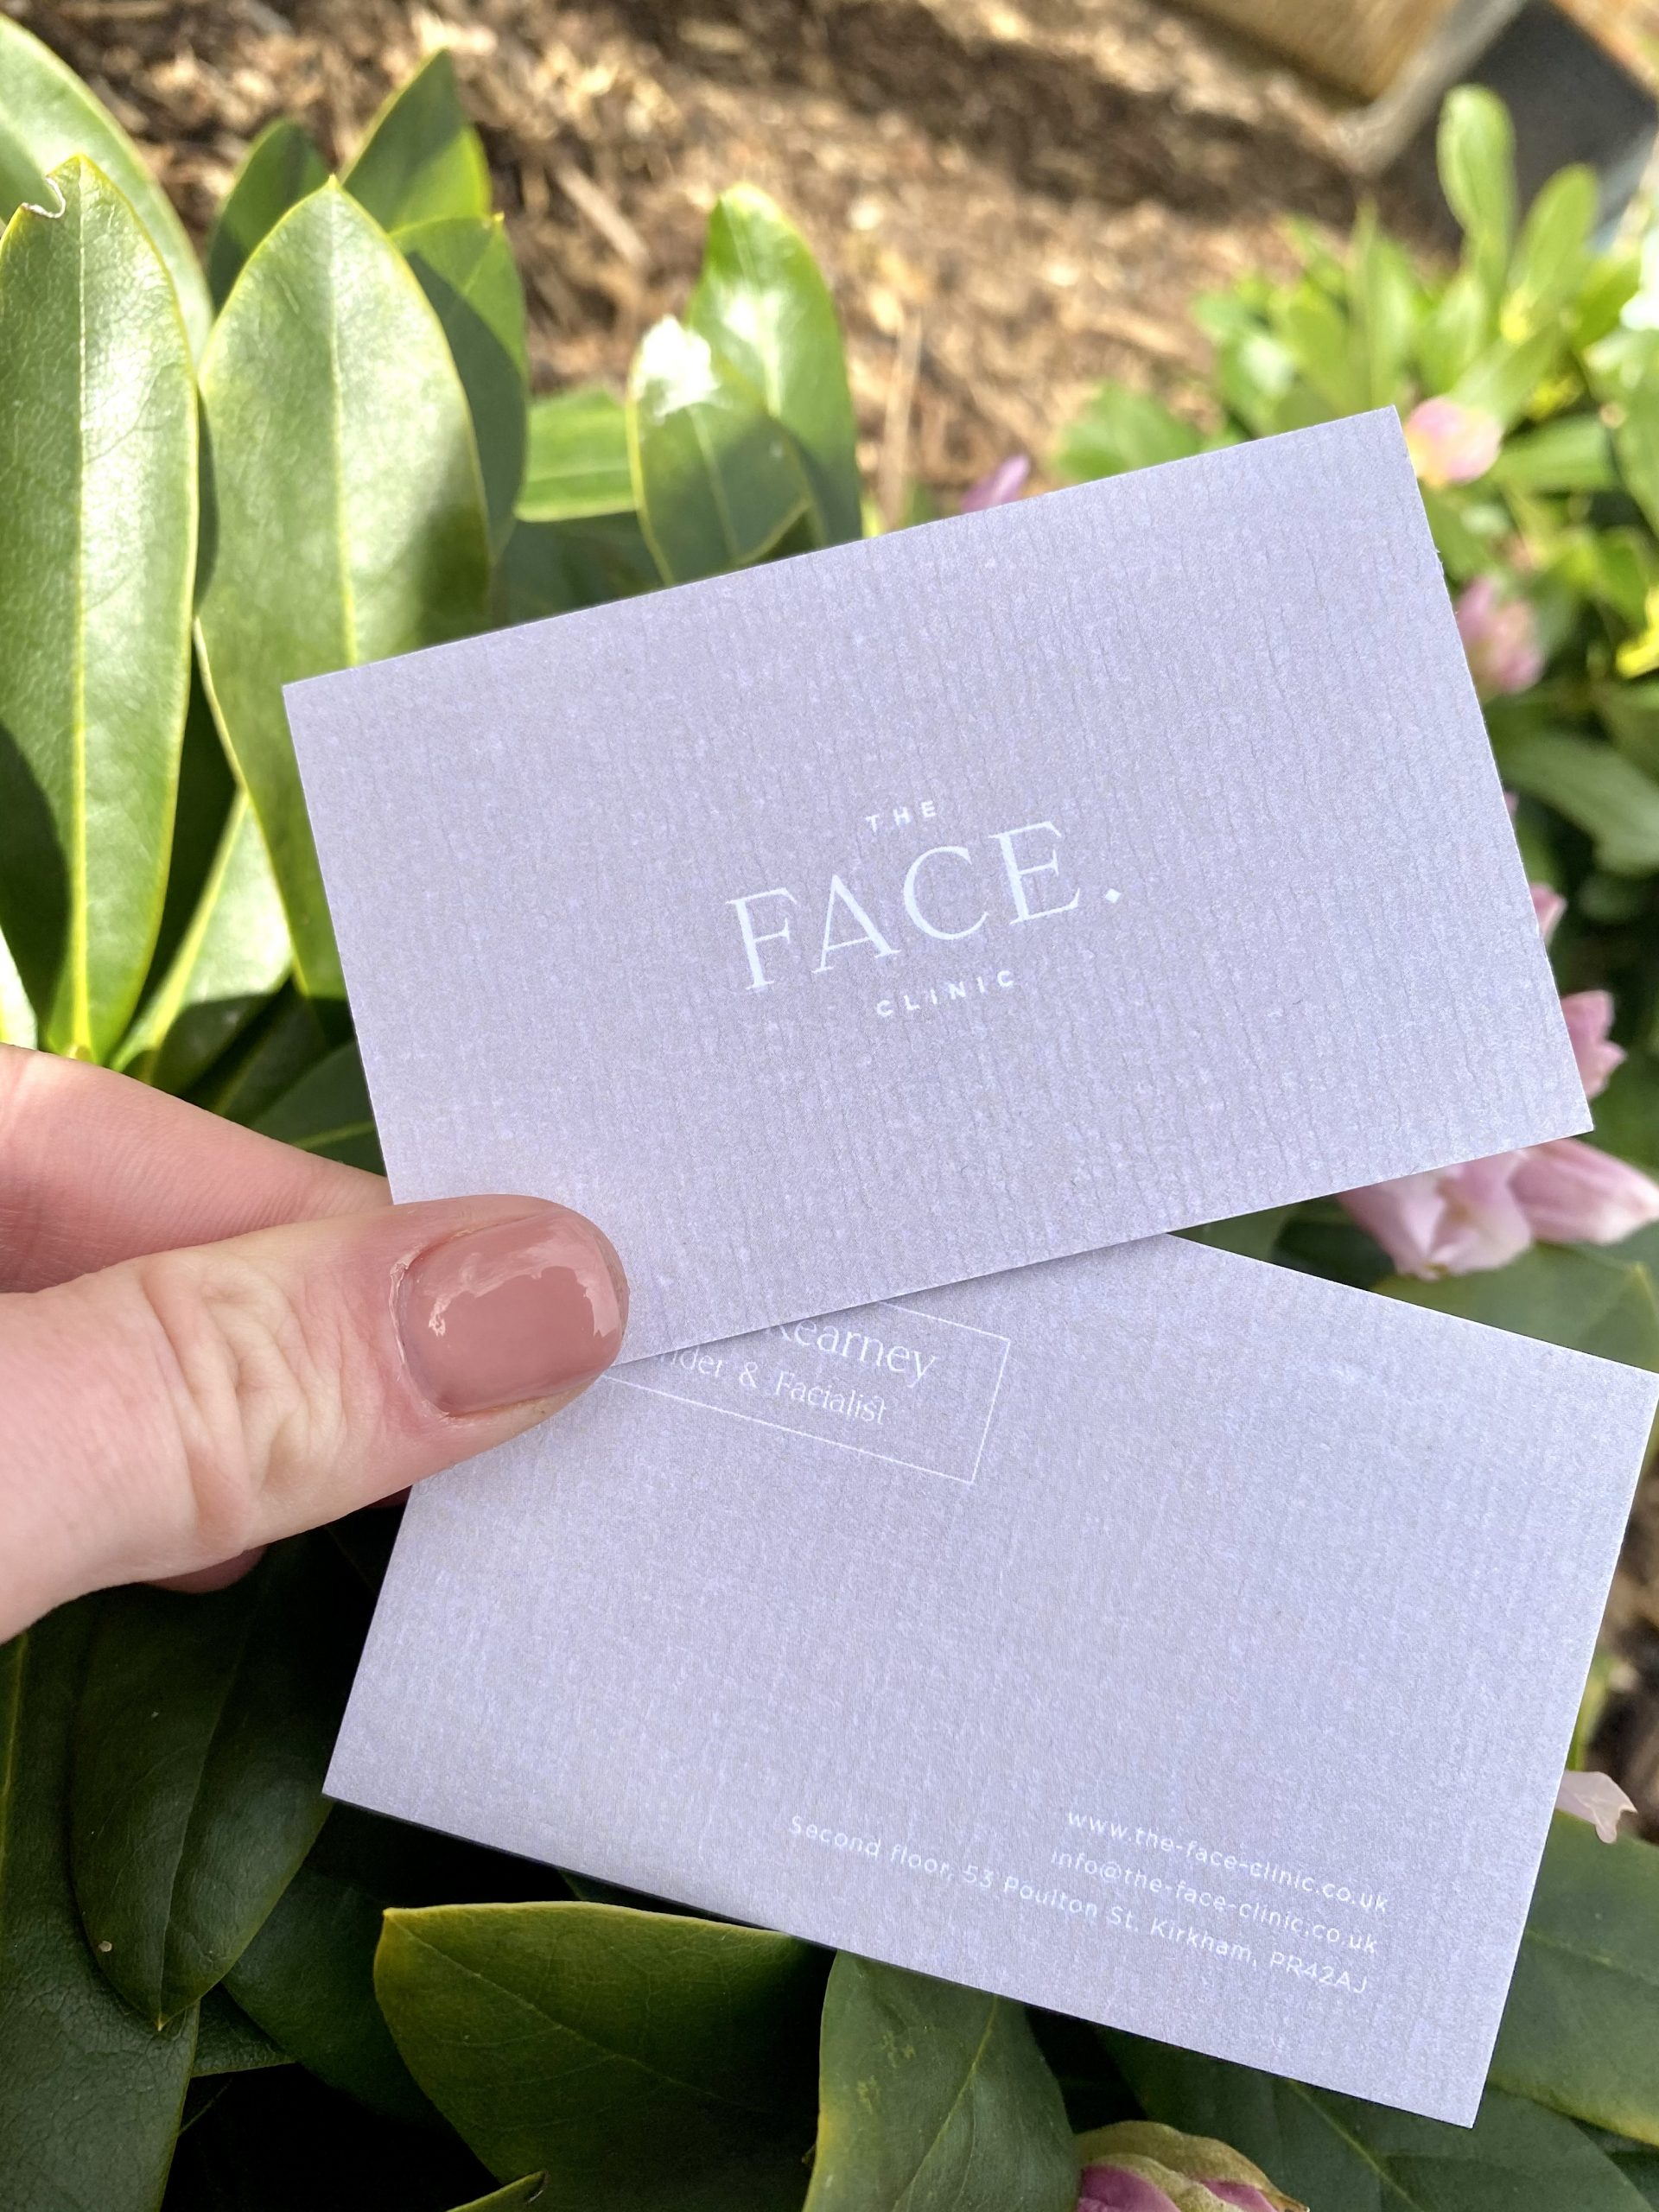 The Face Clinic business card